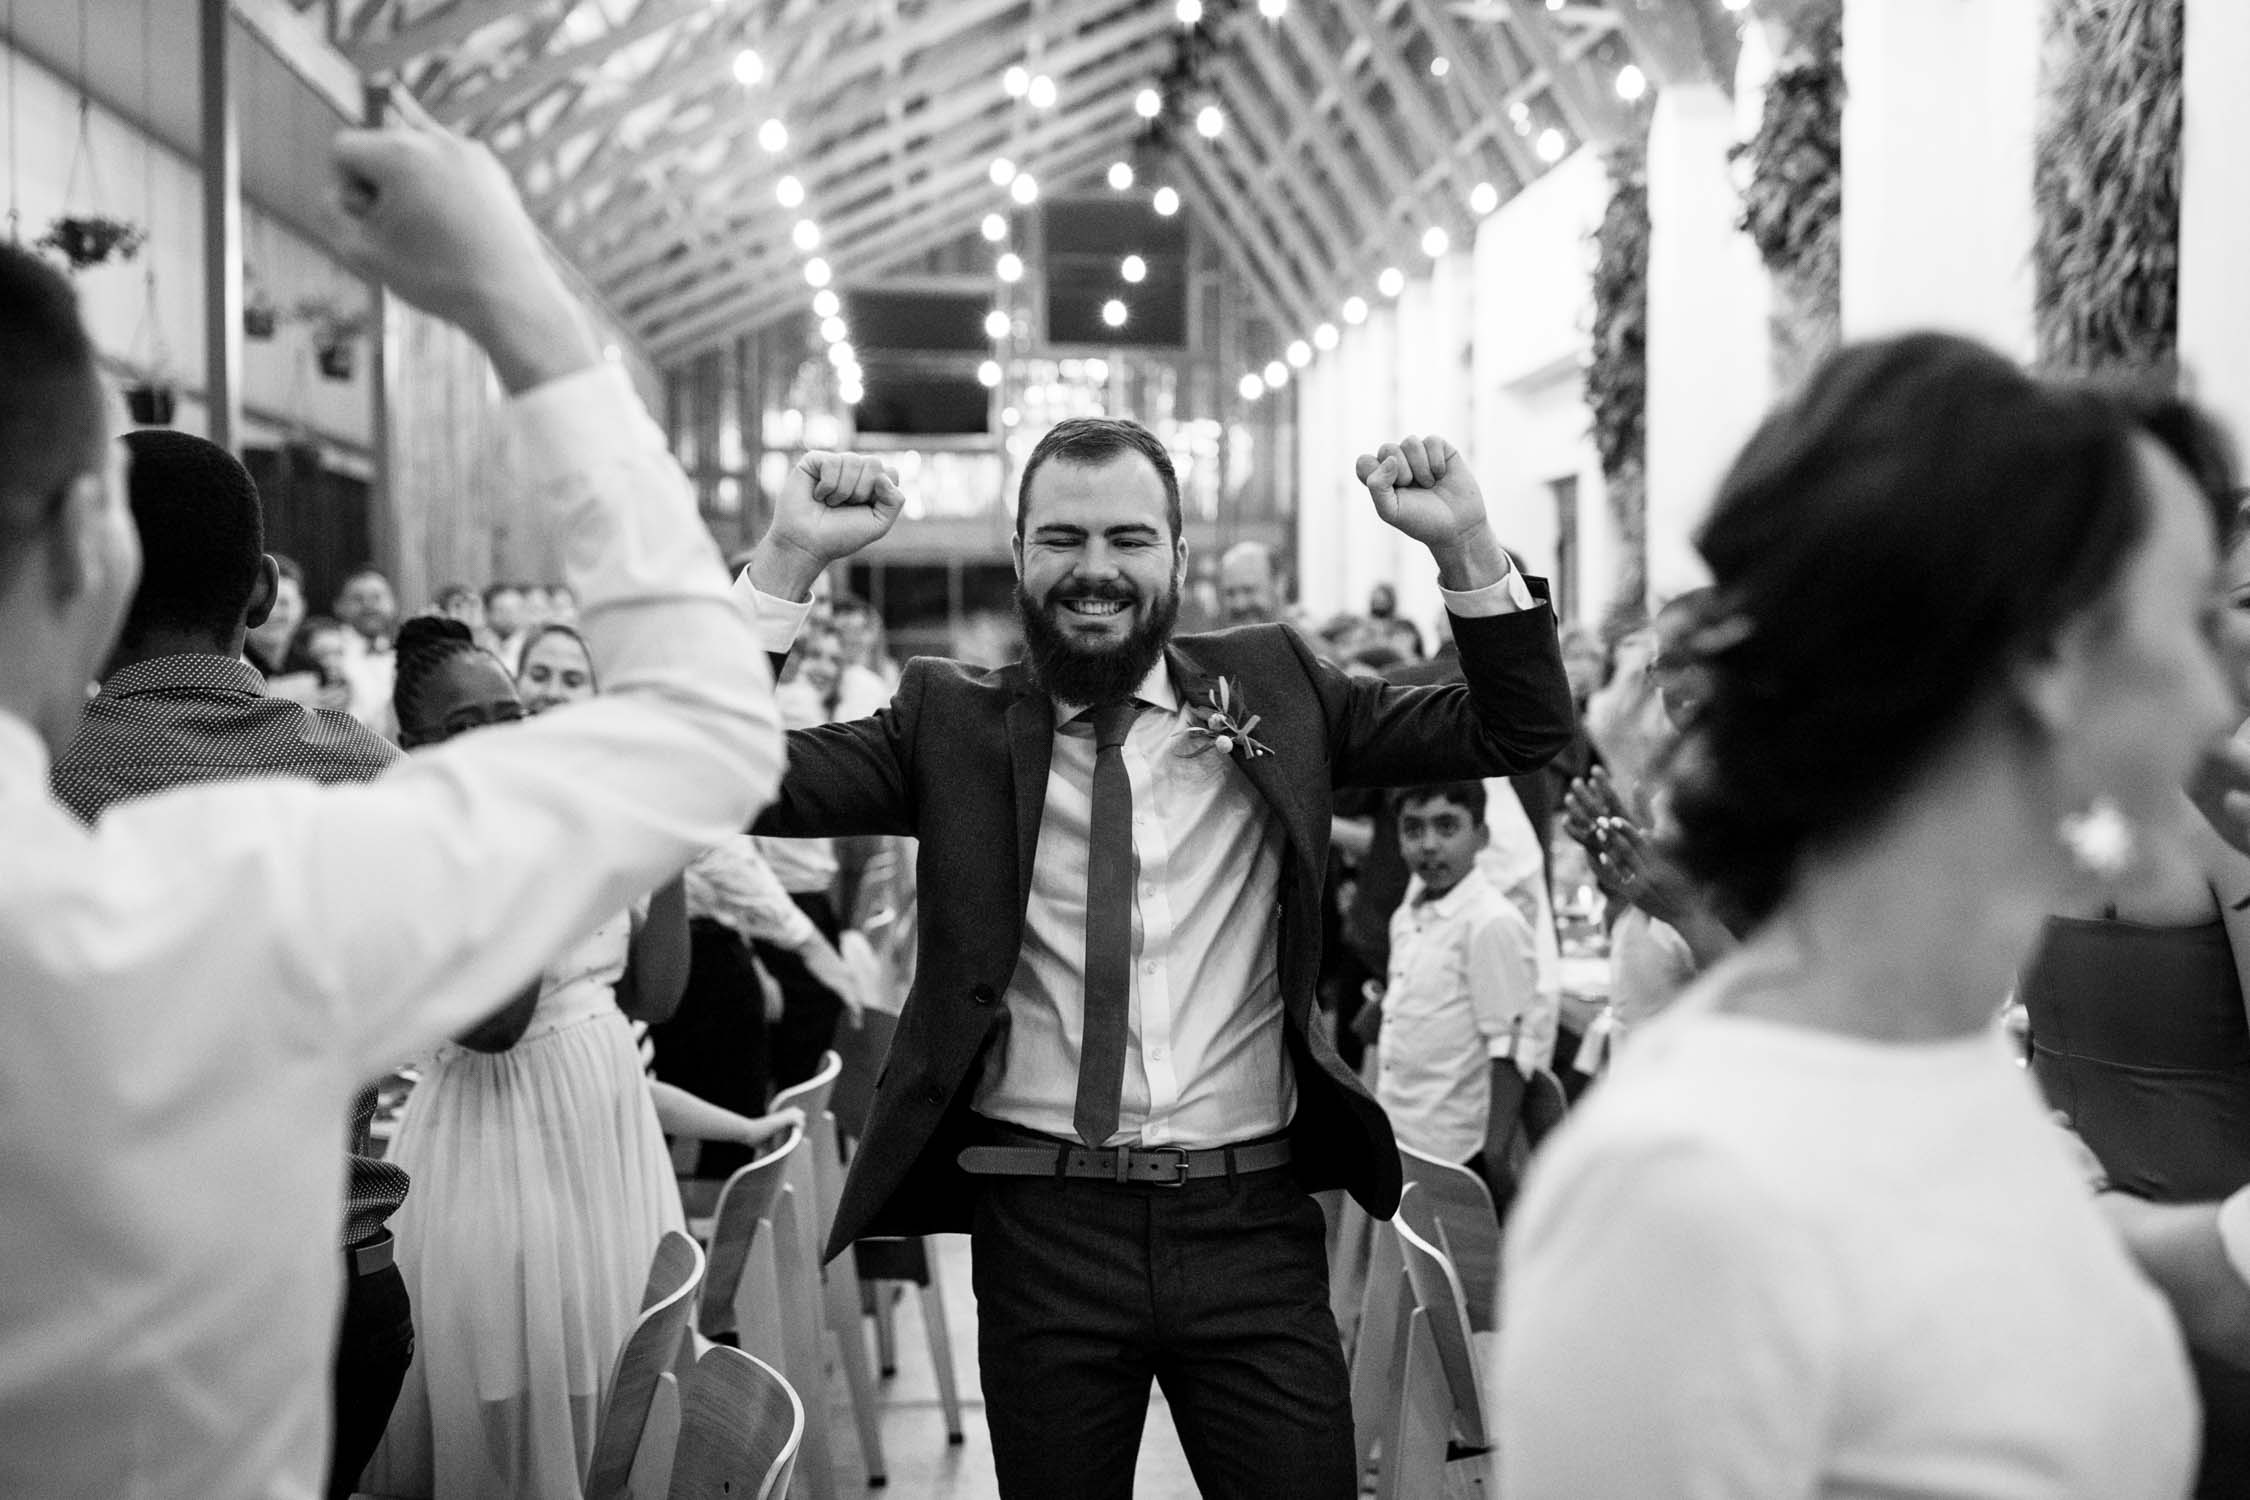 Groom on an emotional and happy high after getting married